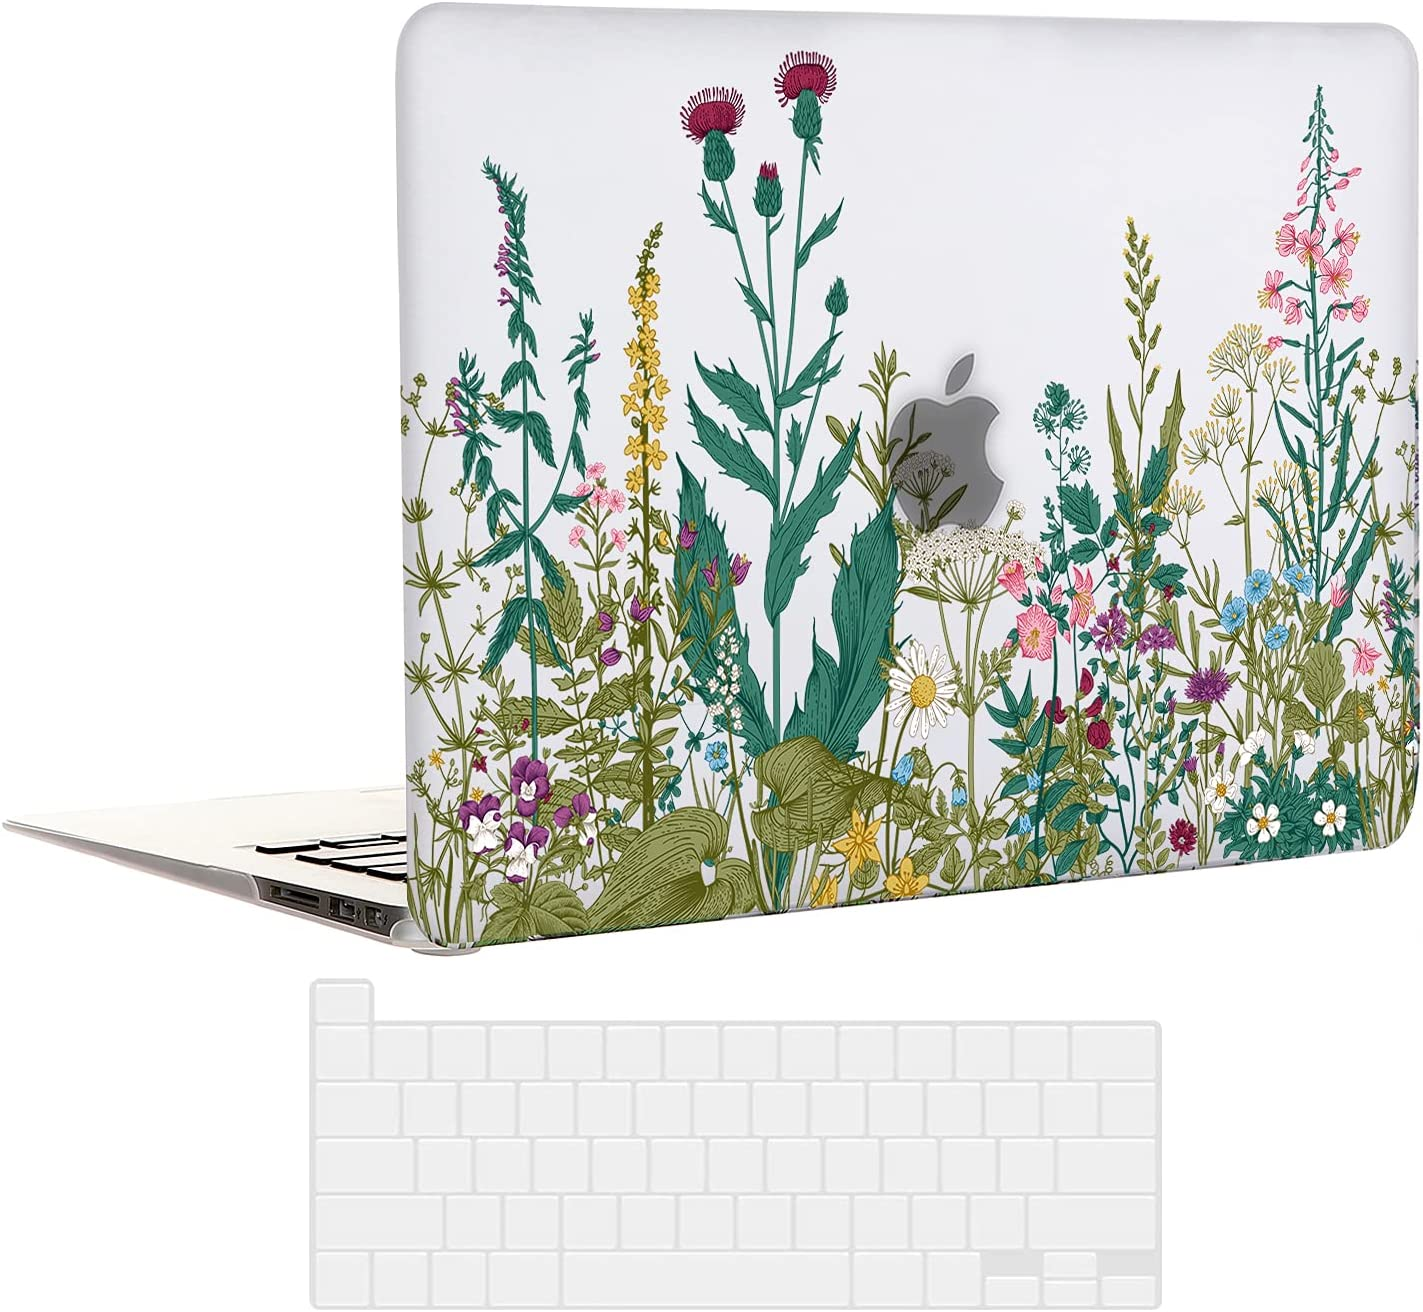 EkuaBot Flowers MacBook Pro 13 inch Case & Transparent Keyboard Cover (A1425/A1502, 2012-2015 Release), Rubber Coated Hard Case Only Compatible MacBook Pro 13.3 with Retina Display (NO CD-ROM)